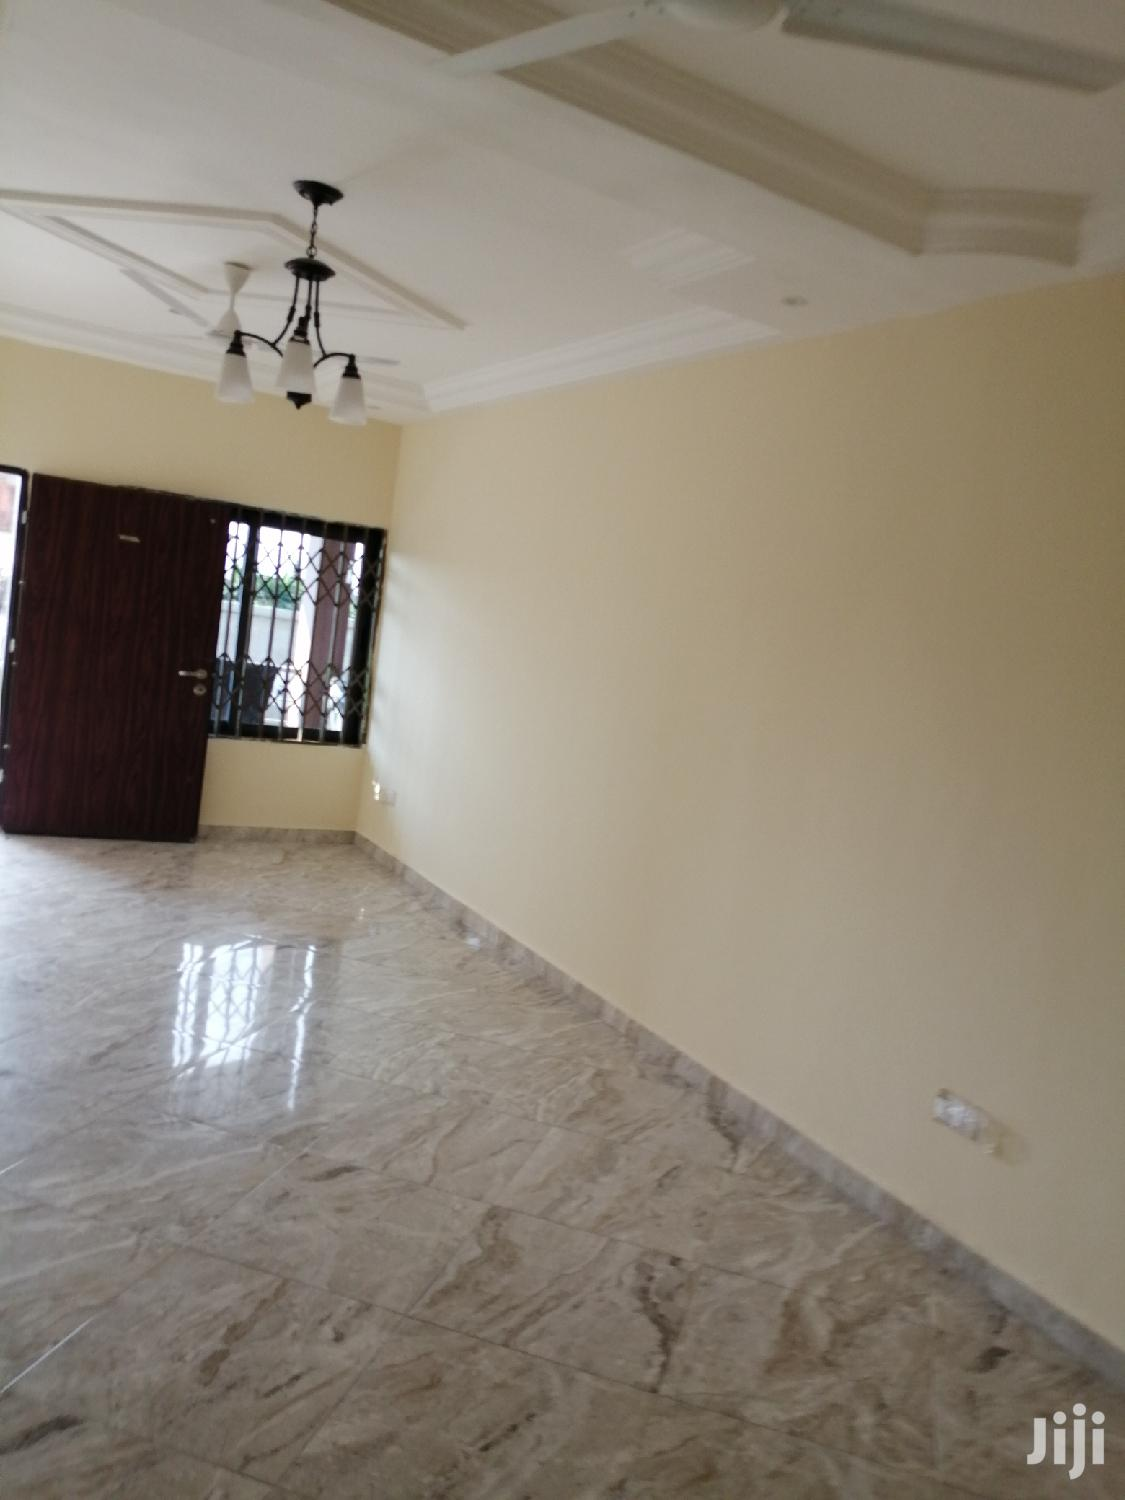 Newly Built 2 Bedroom Ensuit Apartments for Rent at North Legon